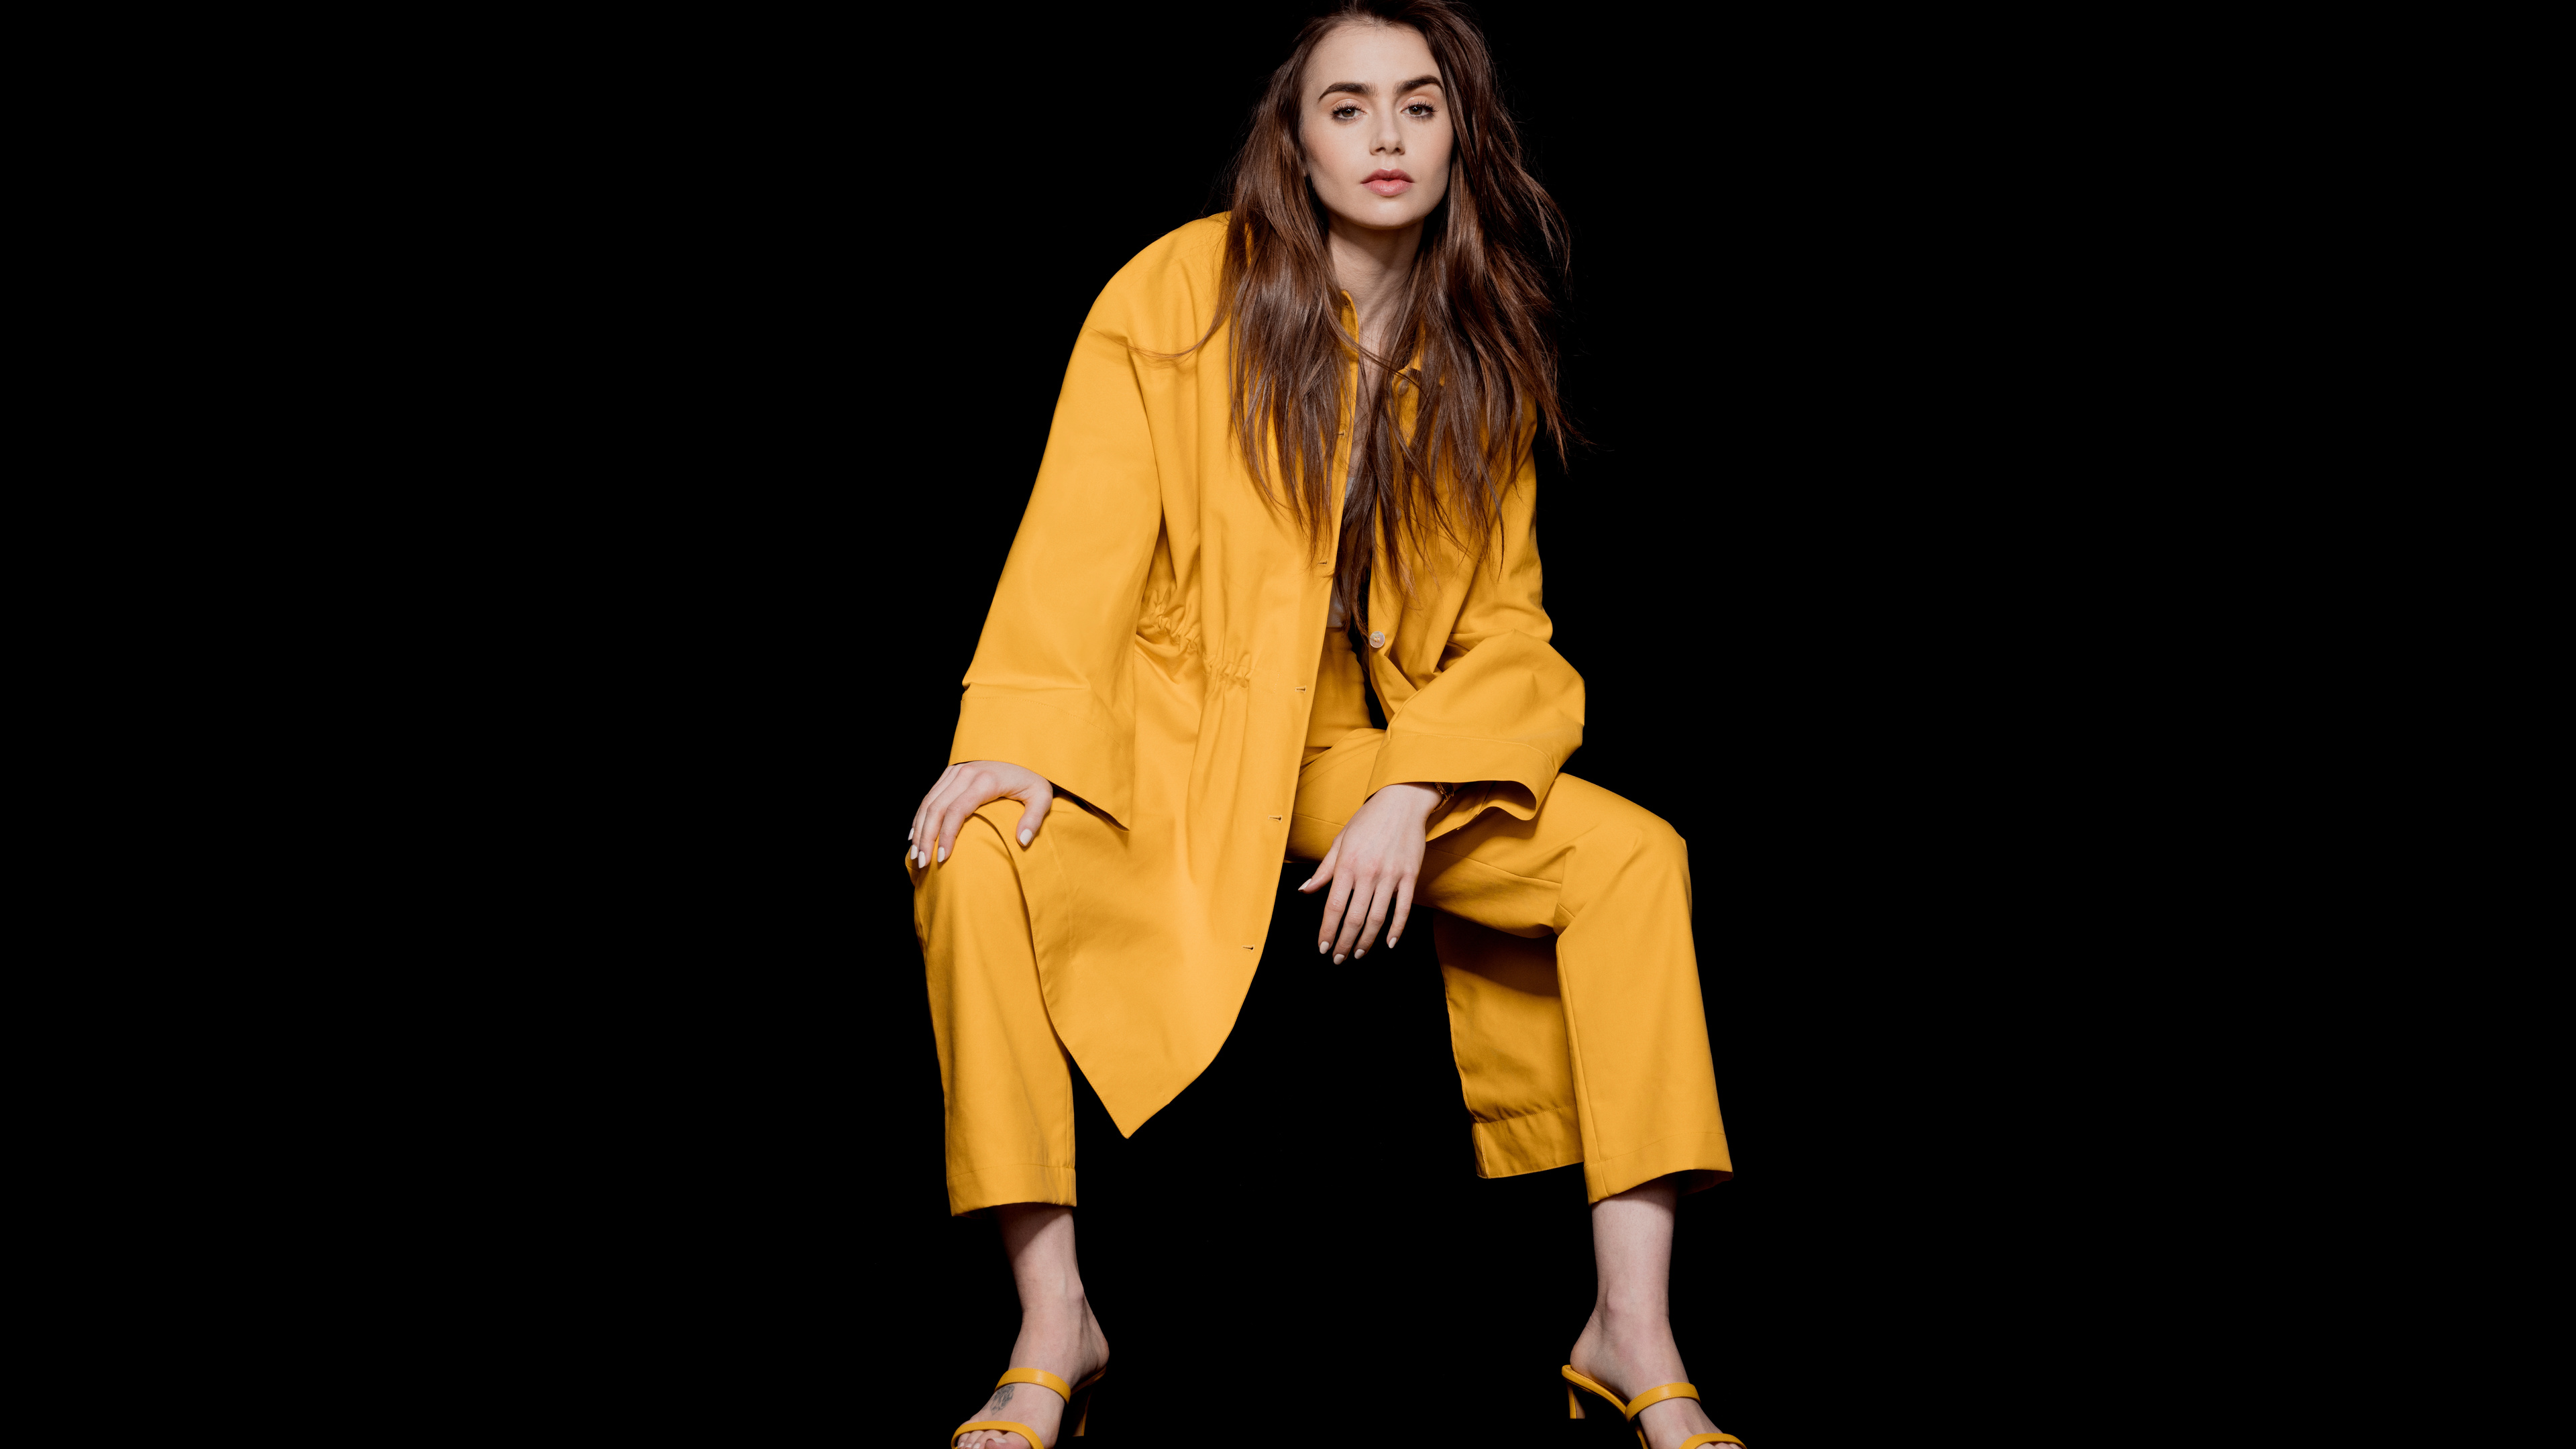 lily collins the observer photoshoot 4k 1558220623 - Lily Collins The Observer Photoshoot 4k - photoshoot wallpapers, model wallpapers, lily collins wallpapers, hd-wallpapers, girls wallpapers, celebrities wallpapers, 4k-wallpapers